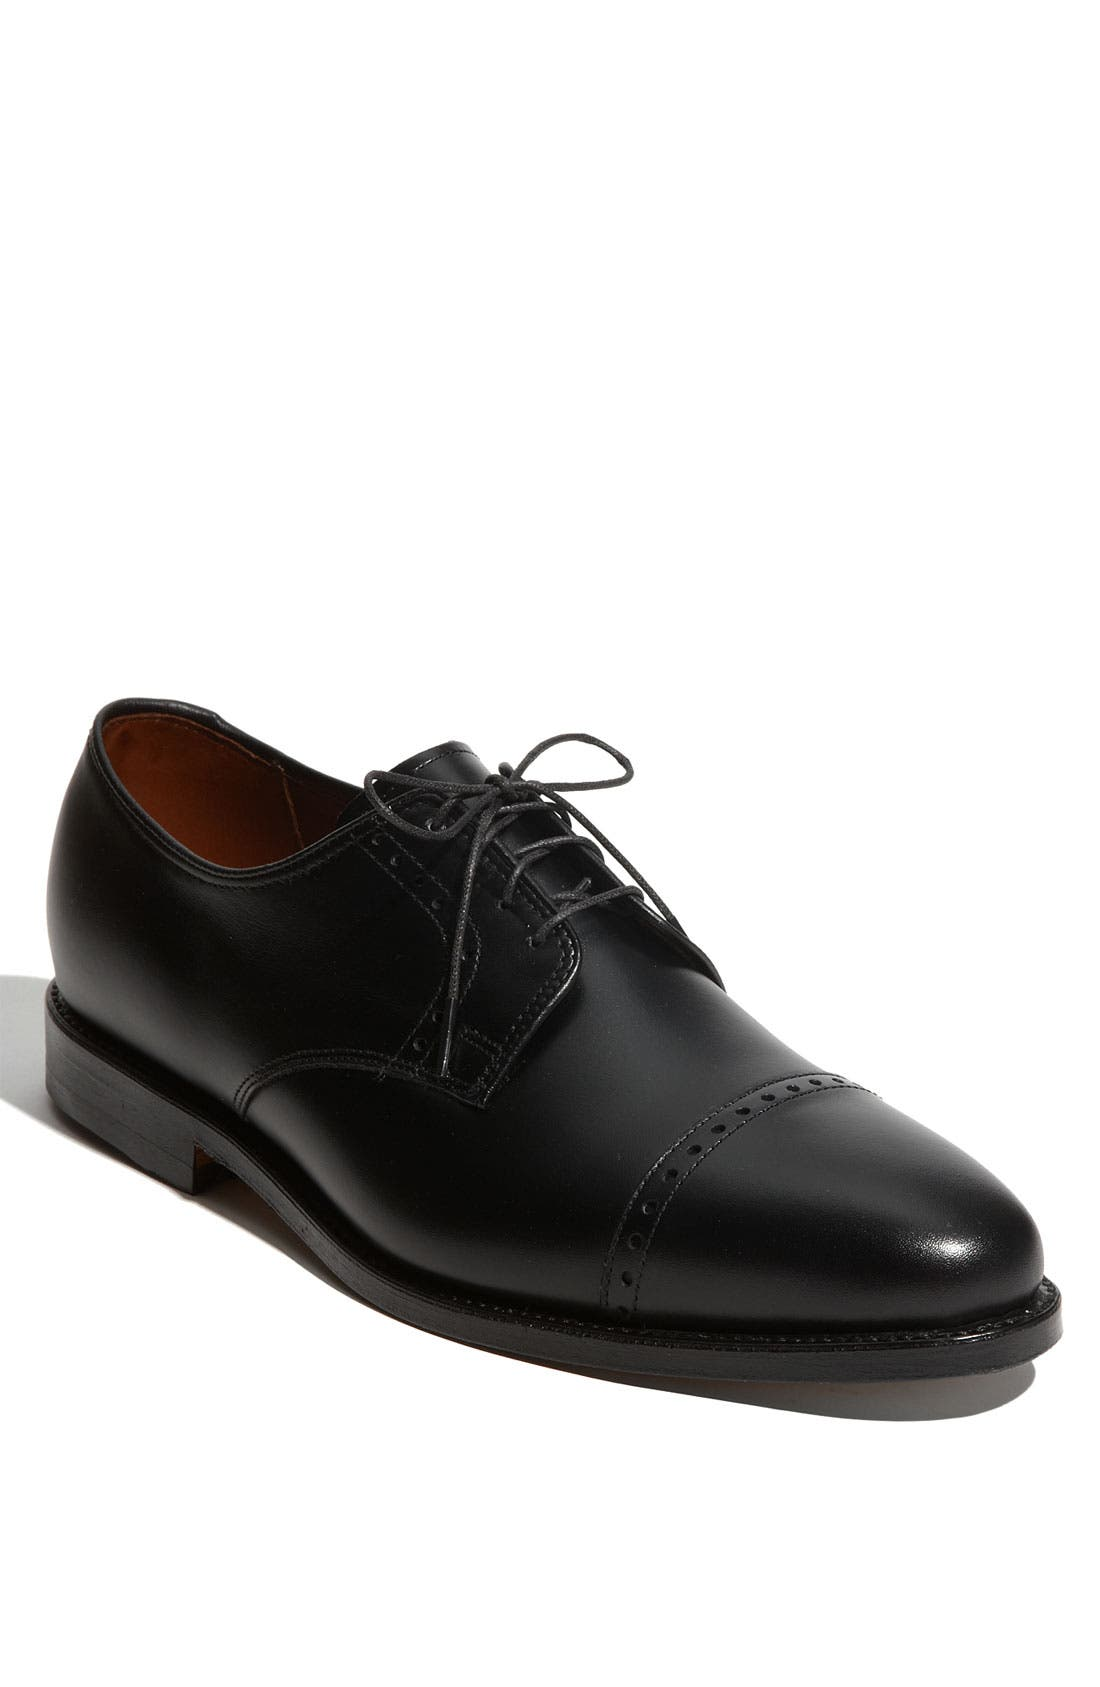 ALLEN EDMONDS Clifton Blucher